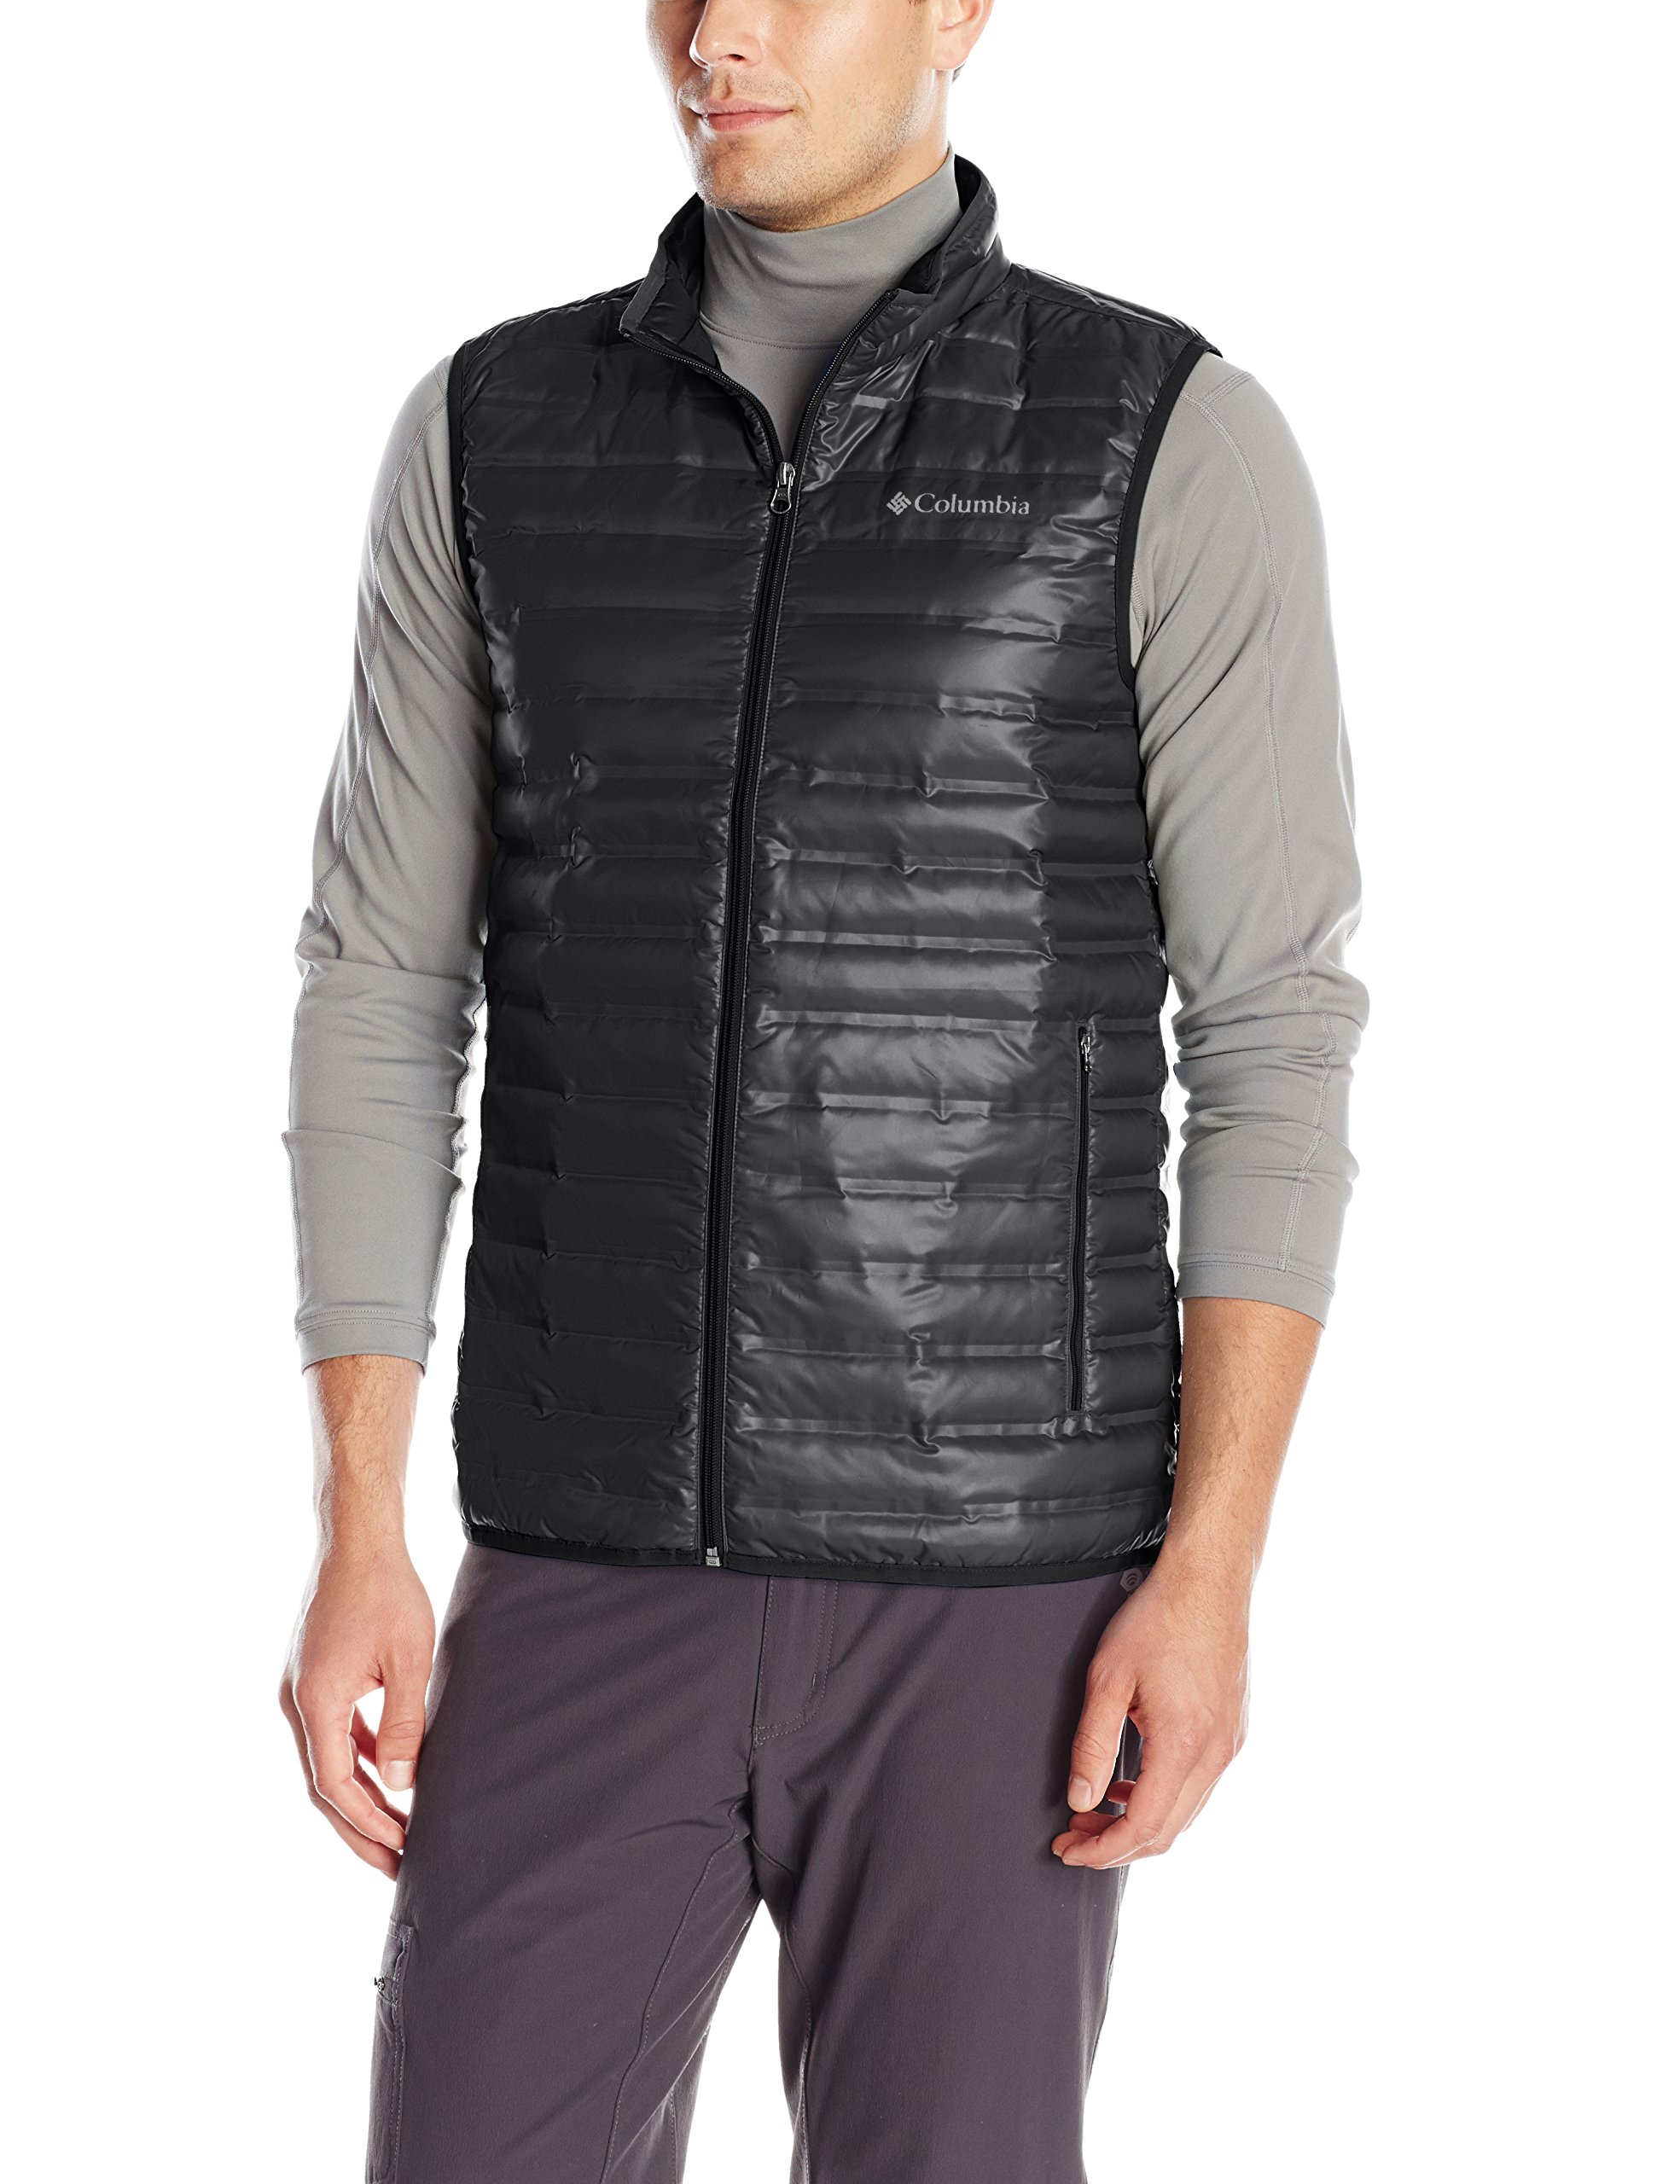 Columbia Sportswear Men's Flash Forward Down Vest, Black, X-Large